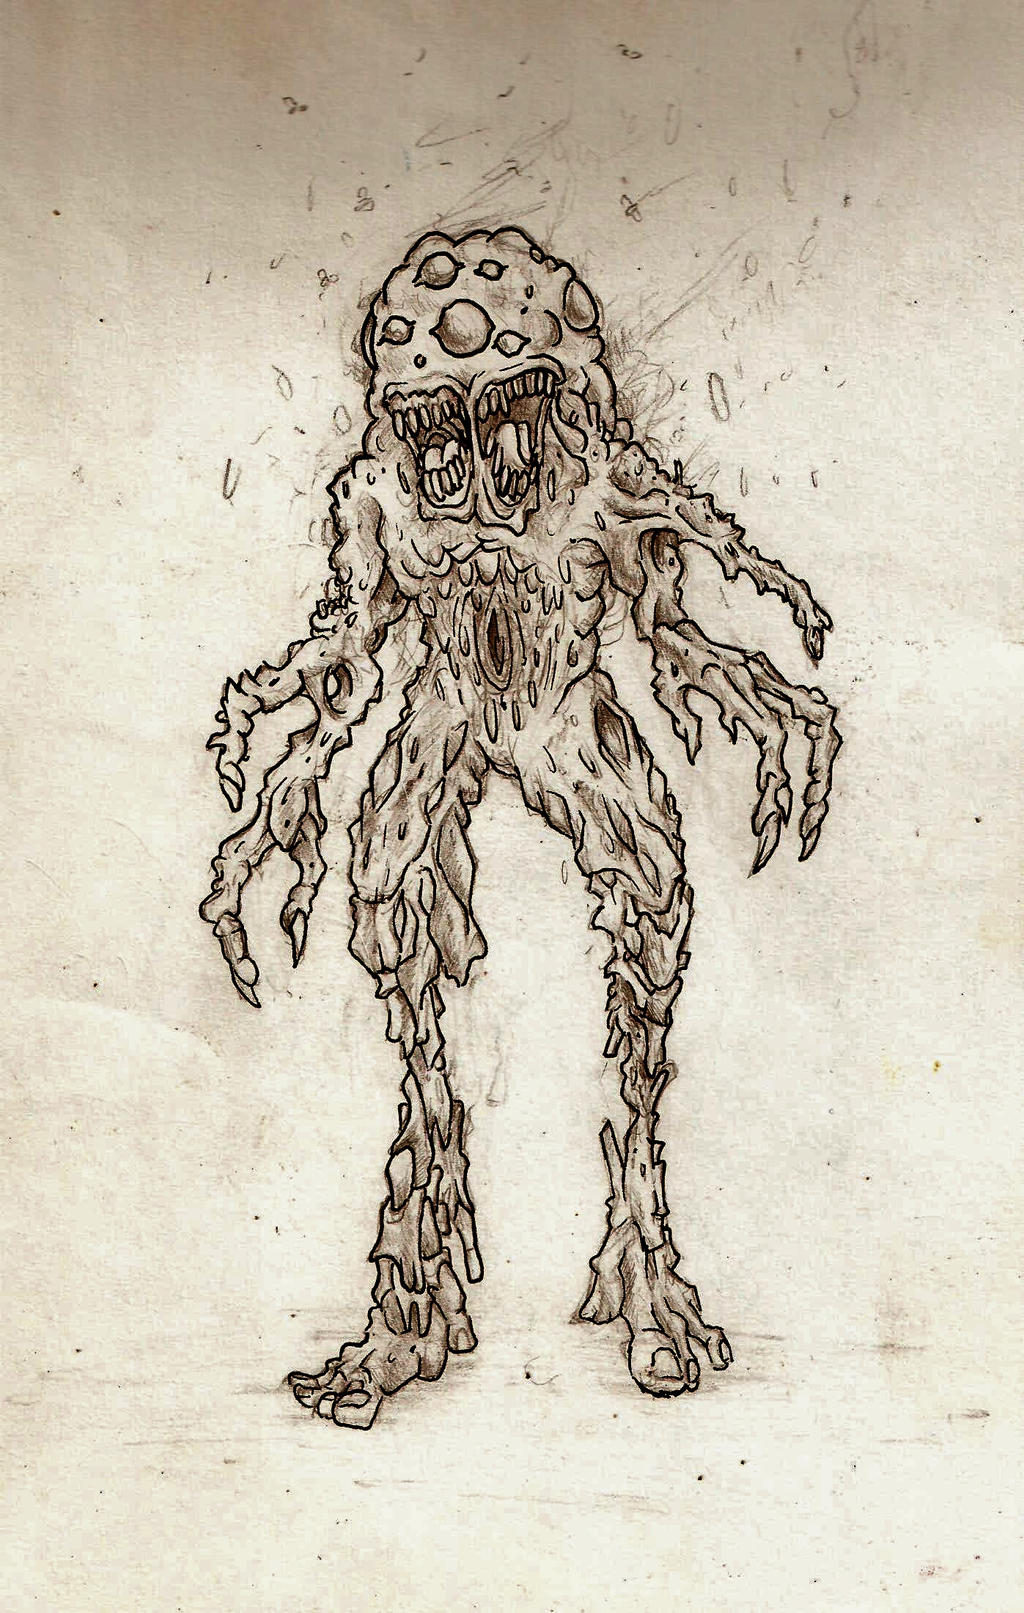 Putrid Mutant Pencil And Ink By 16bitghost On Deviantart